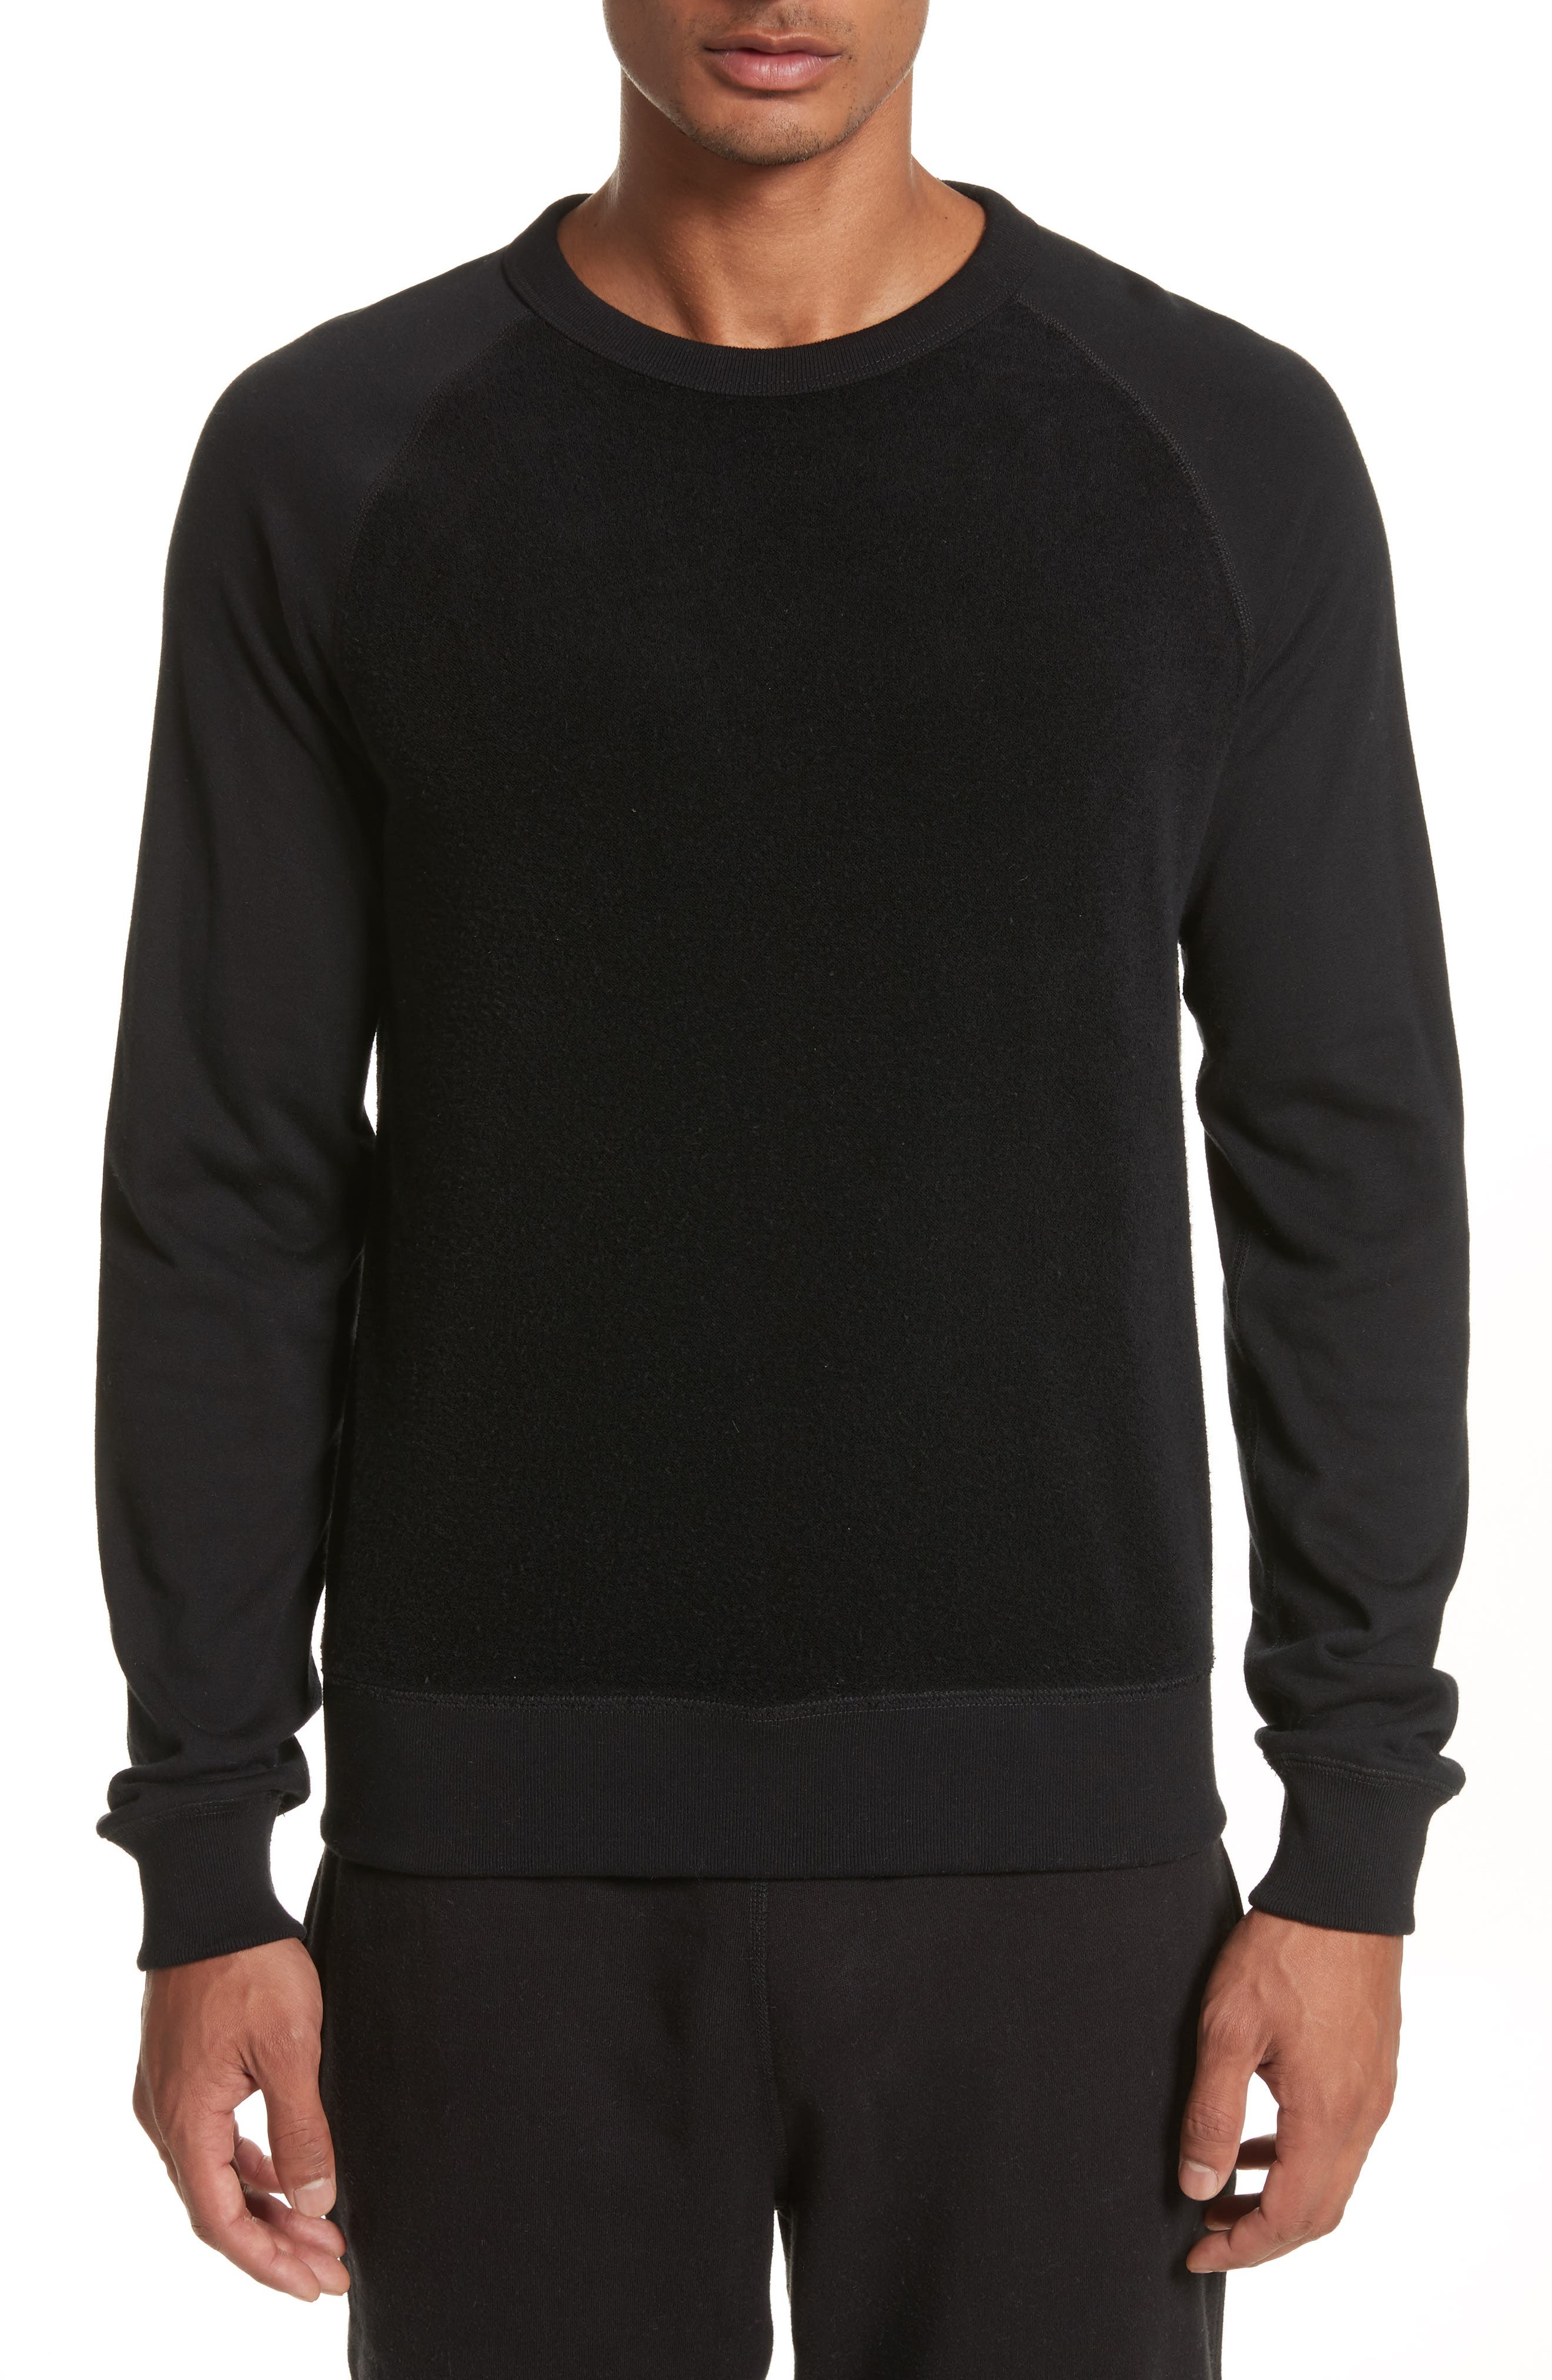 Todd Snyder Textured Crewneck Pullover